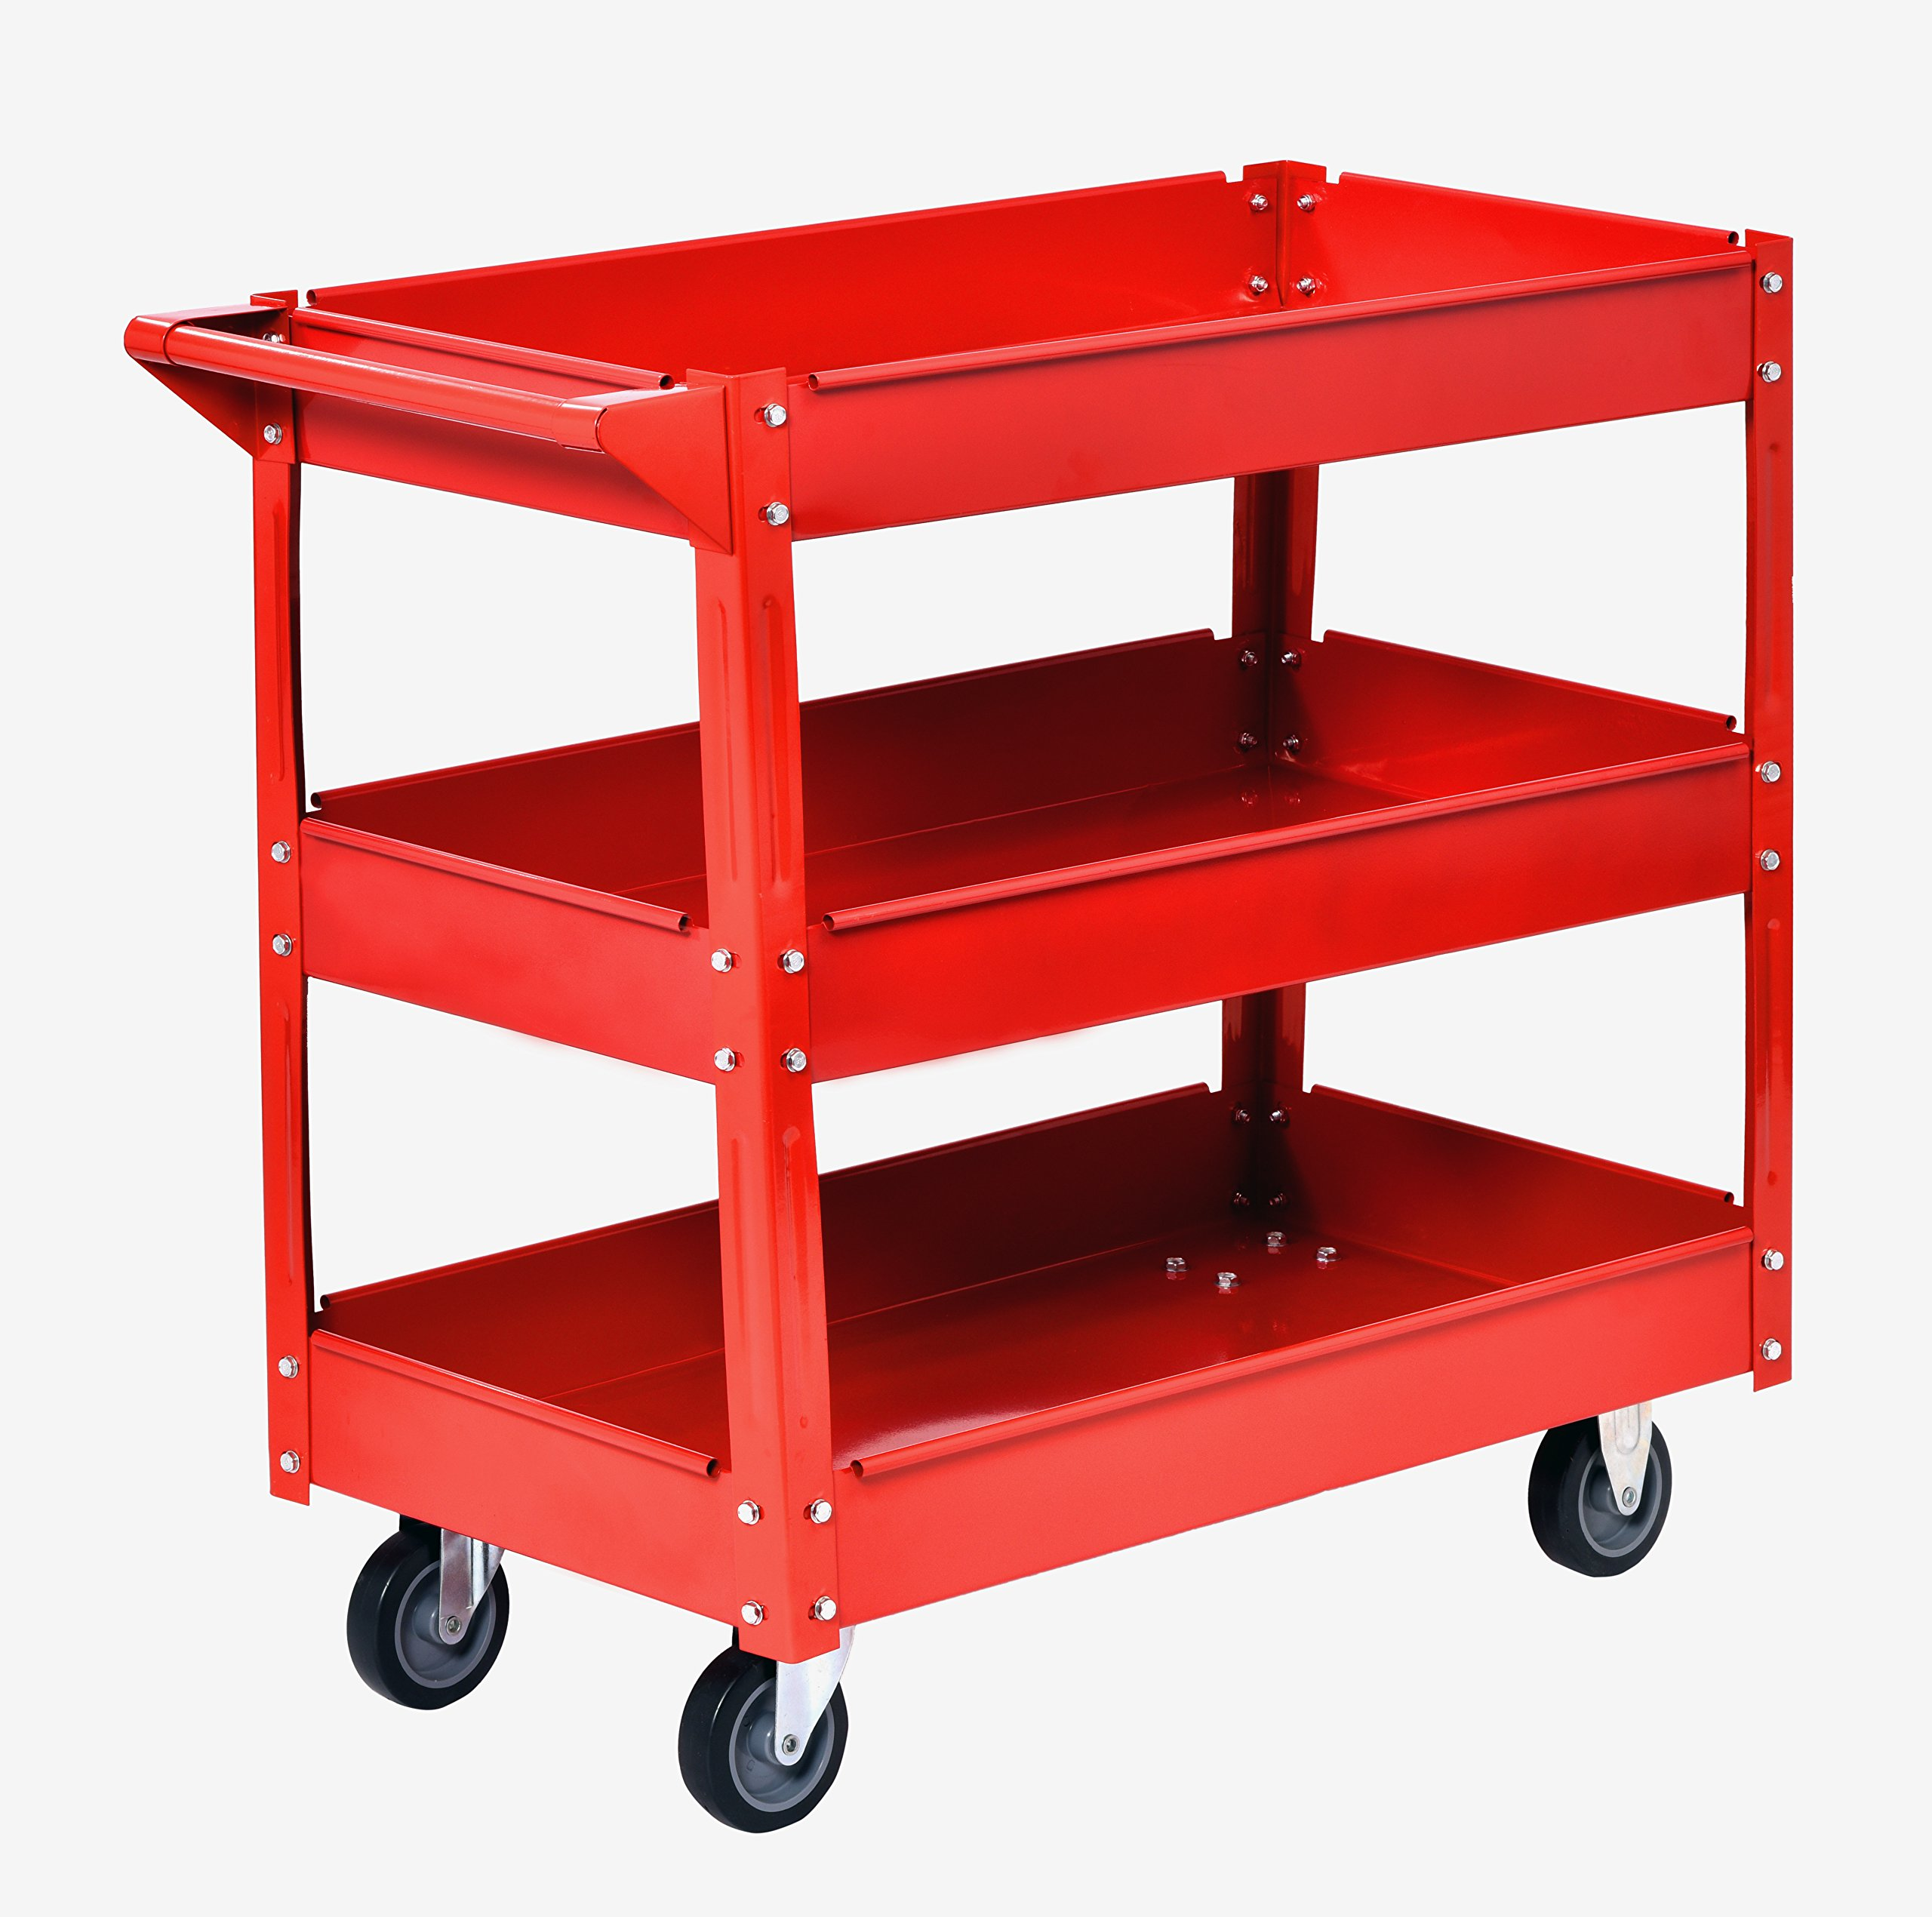 Muscle Carts SC3216-RED Teel Industrial Commercial Service Cart, 220 lb. by Muscle Carts (Image #1)